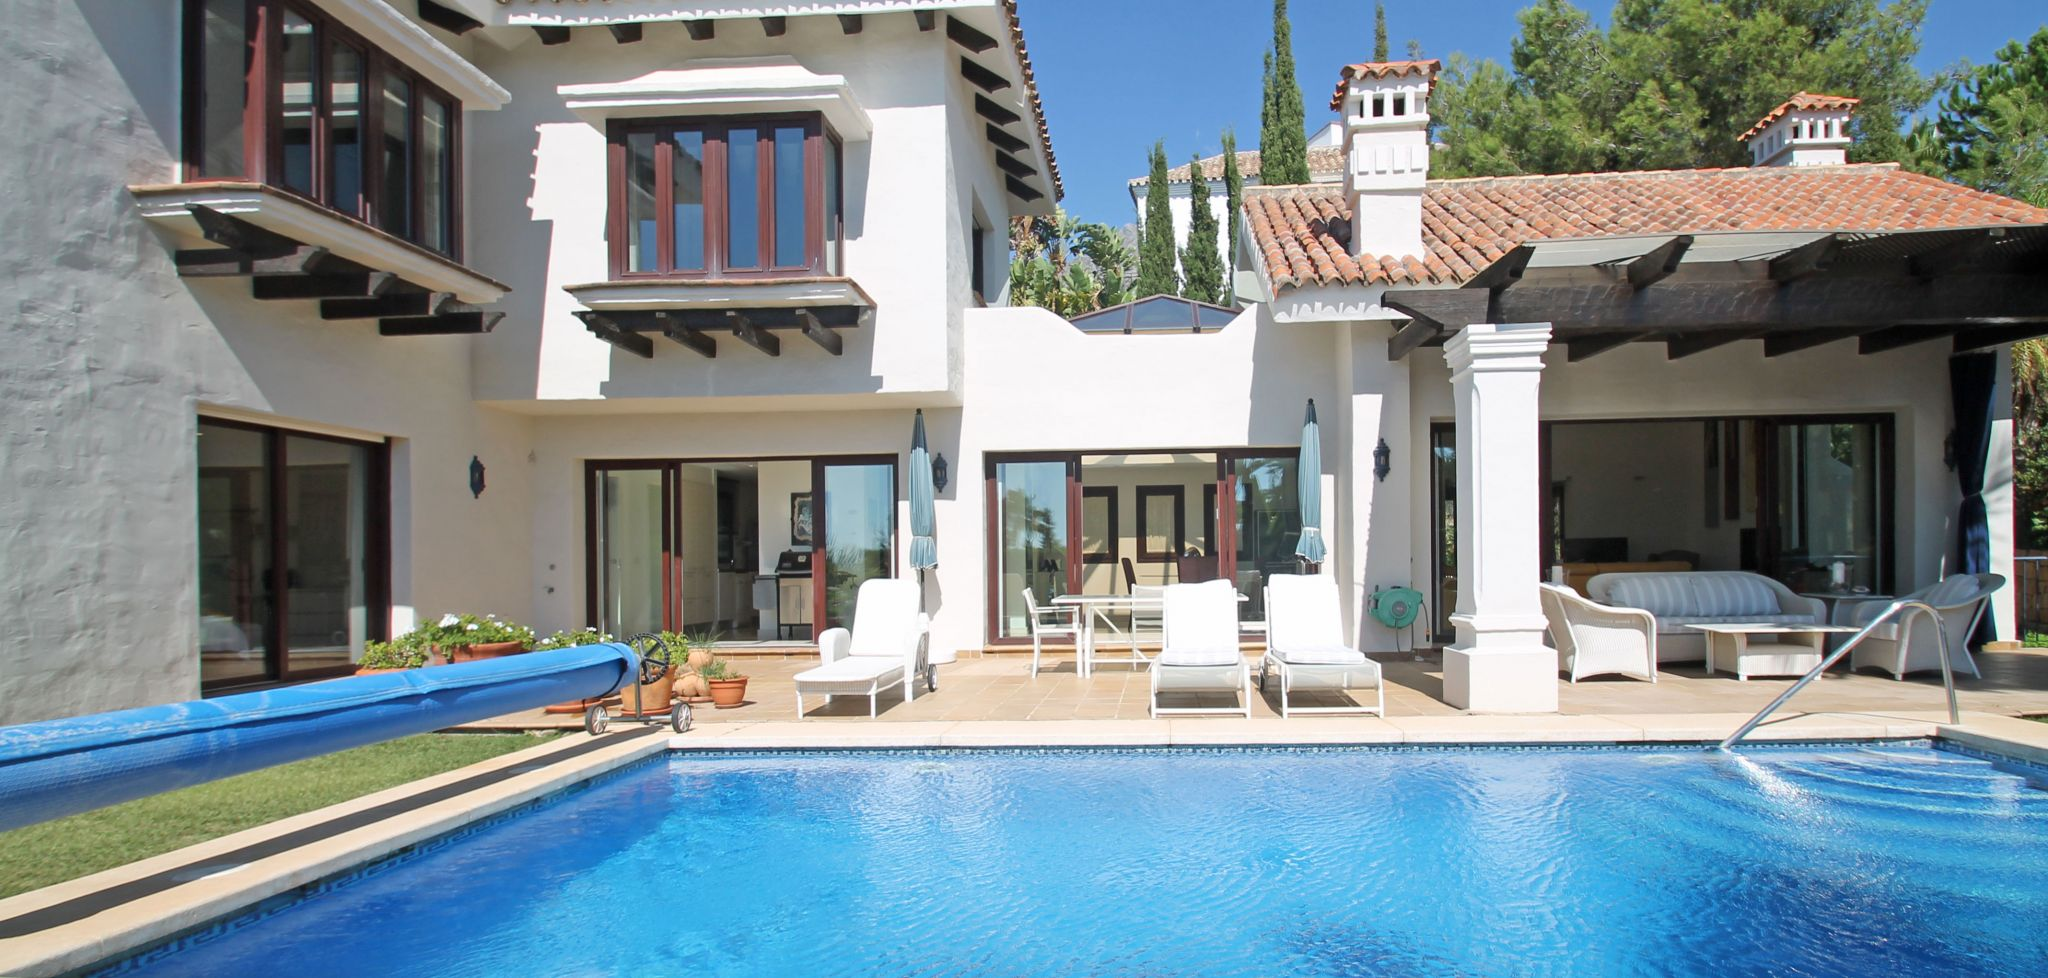 Elegant four bedroom villa with sea views in Sierra Blanca, Marbella